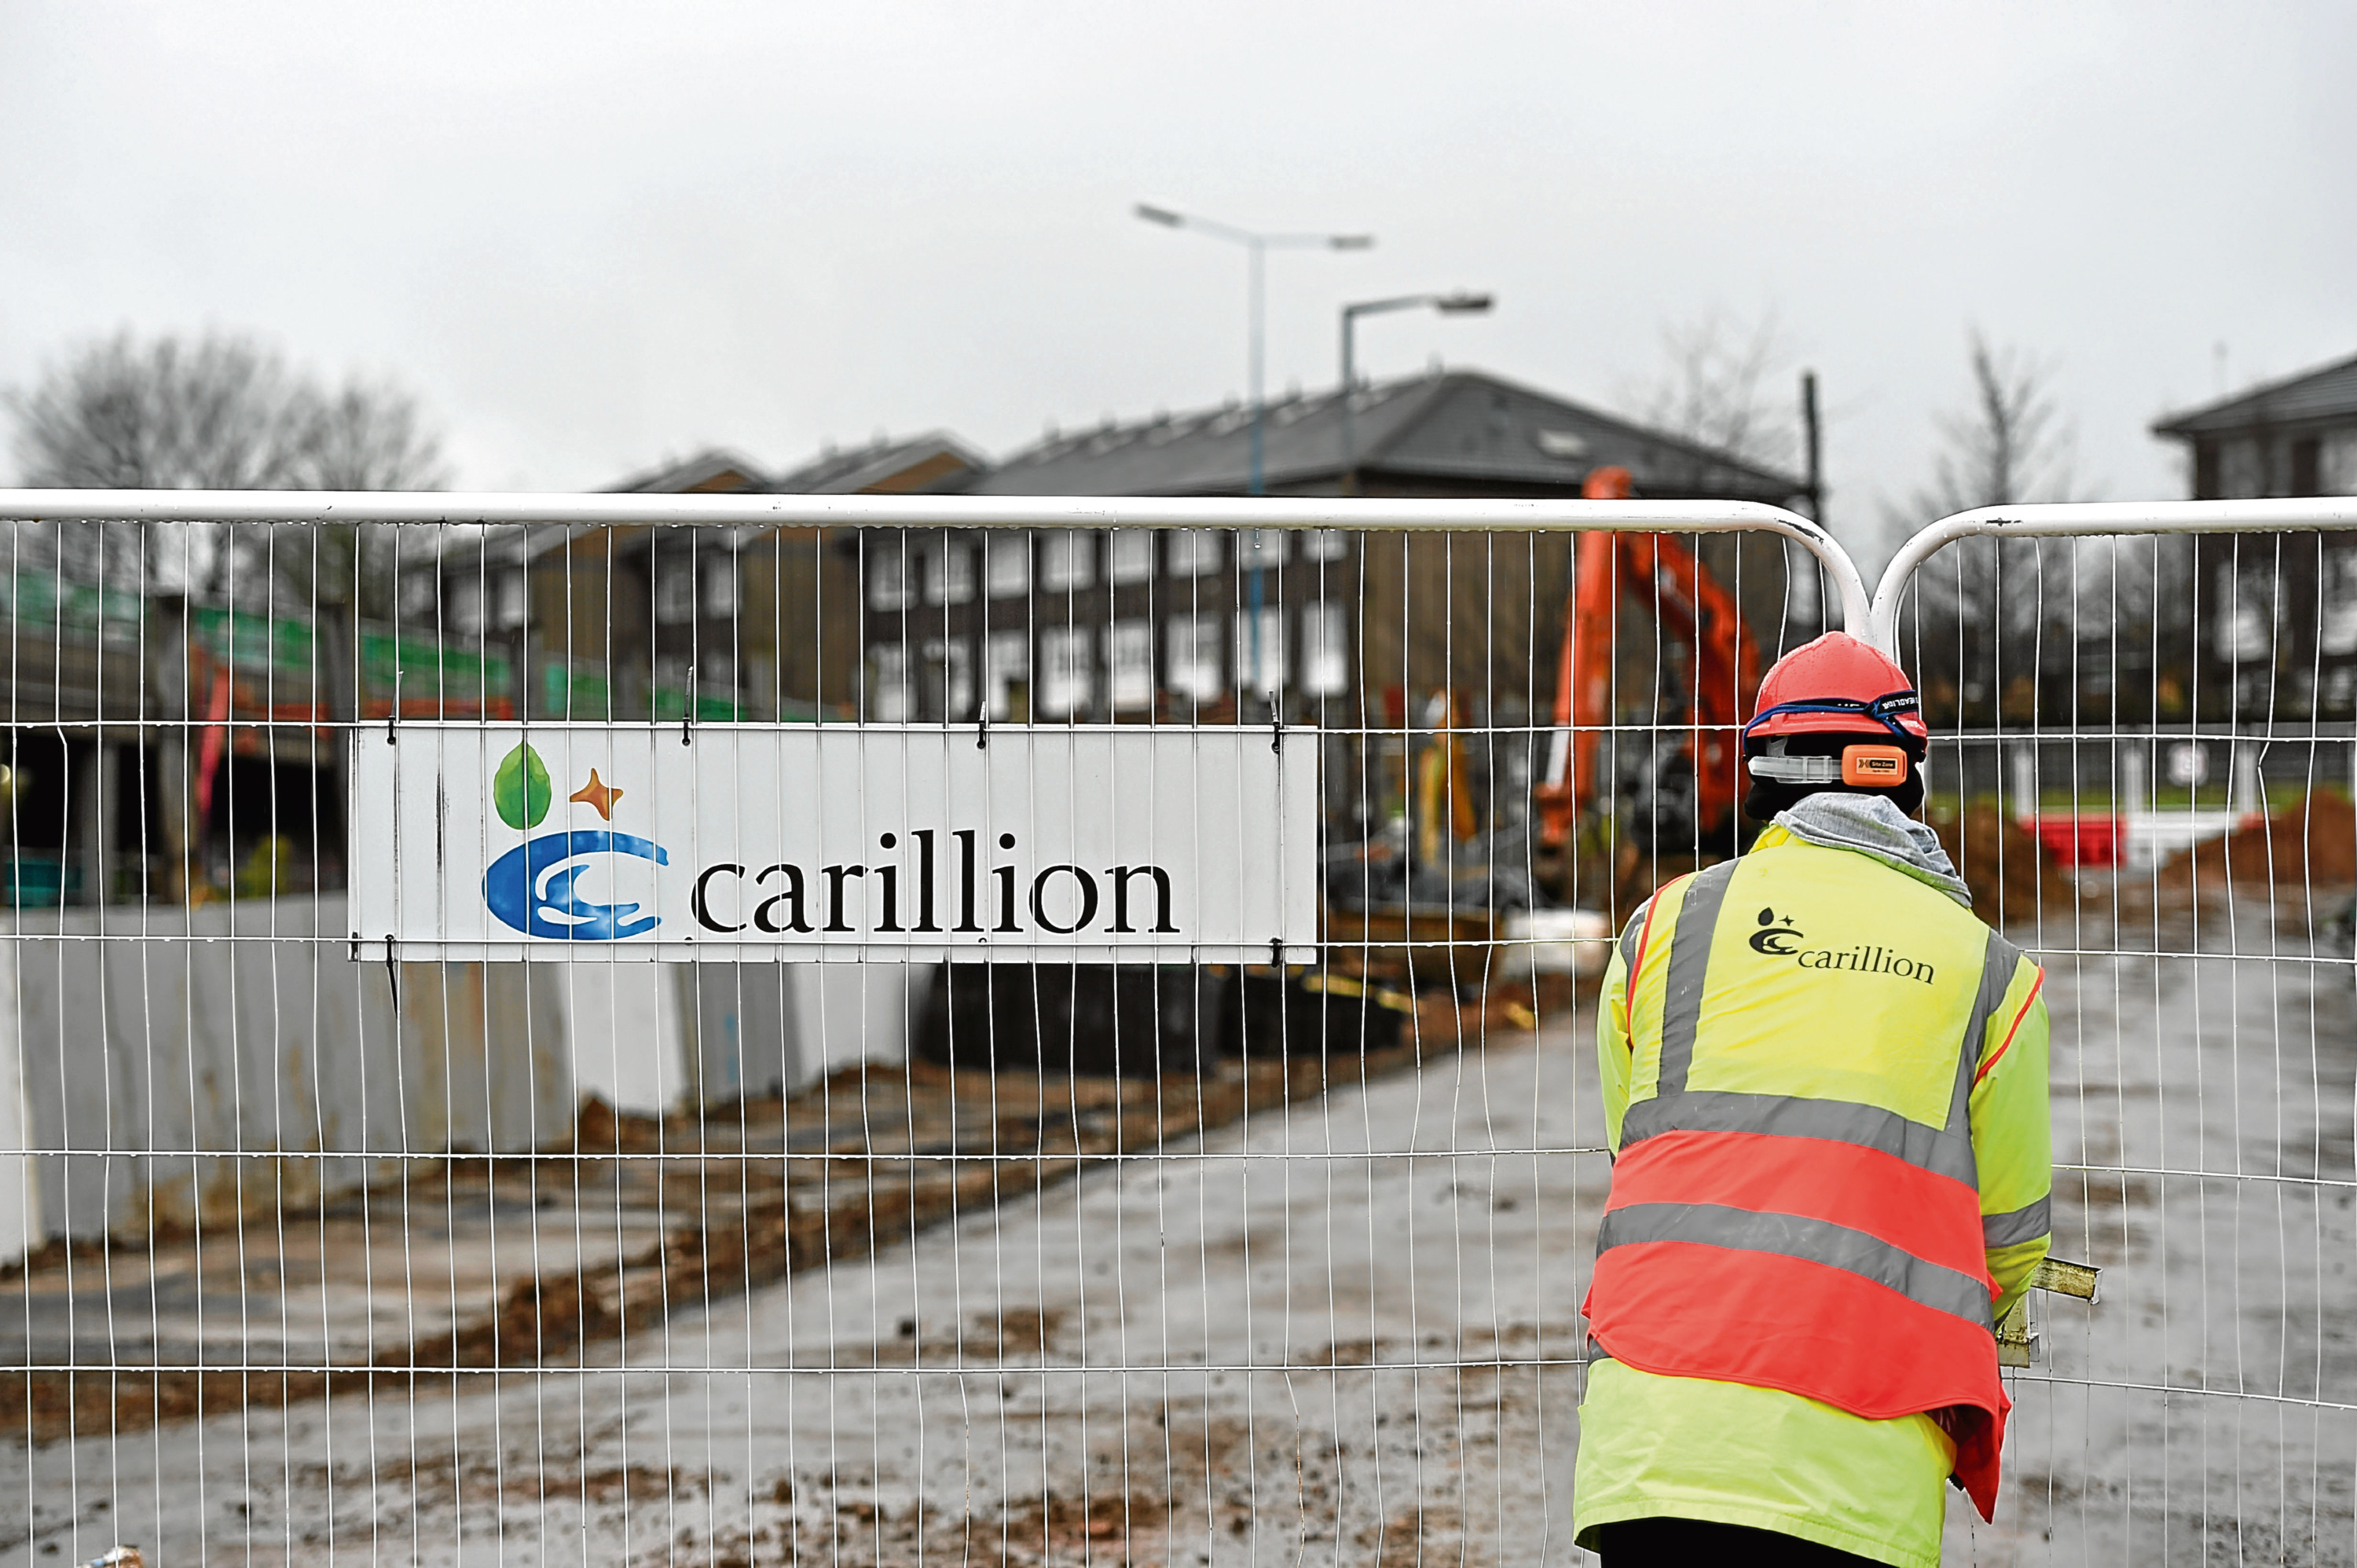 Carillion's collapse into liquidation threatend thousands of jobs both directly and indirectly